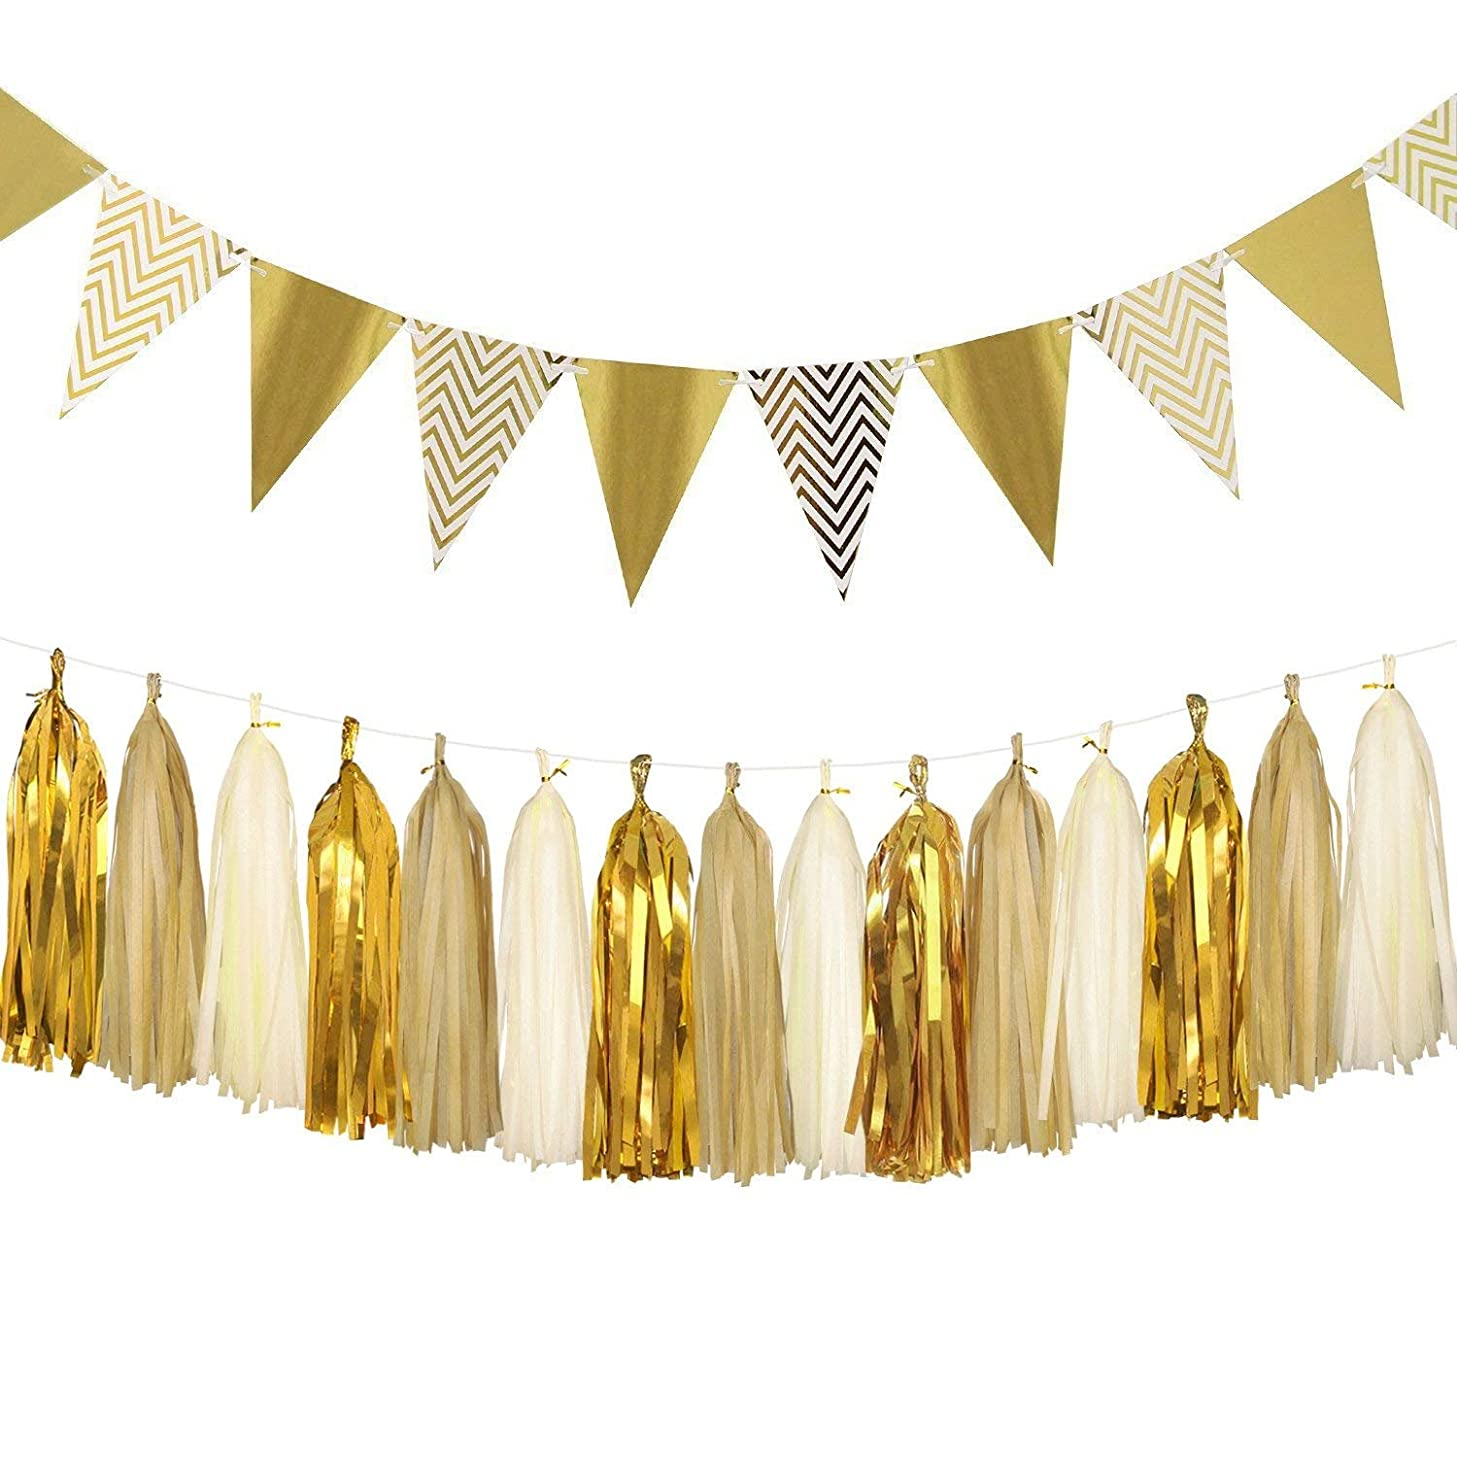 Sparkly Paper Pennant Banner Triangle Flags Bunting 10 Feet and Tissue Paper Tassels Garland 15 pcs for Baby Shower, Birthday Party Wedding Wall Decorations, Metallic Gold